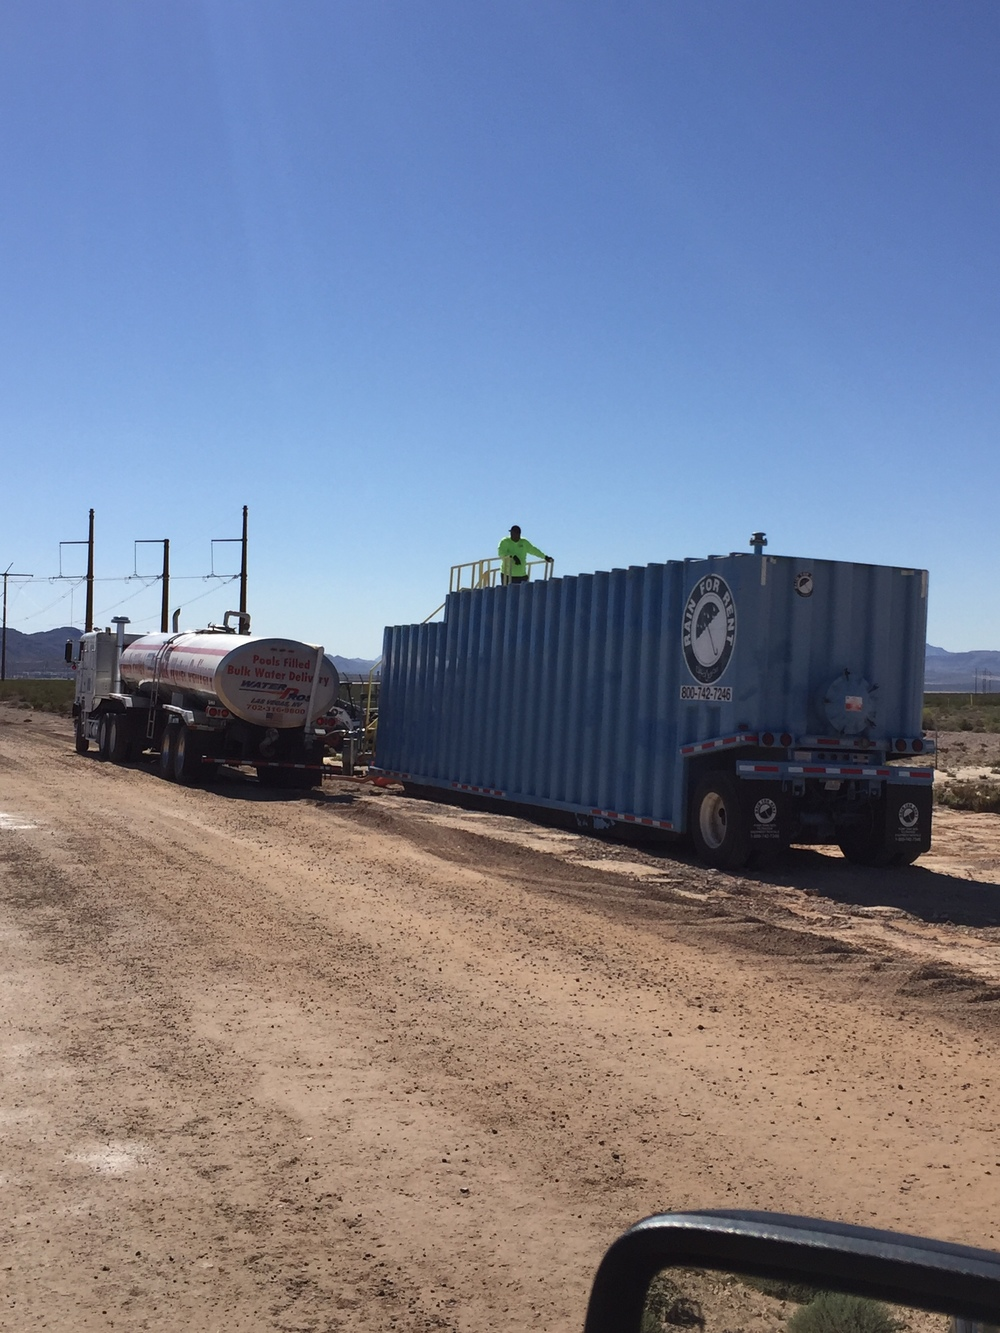 Photo Oct 26, 12 55 20 PM.jpg